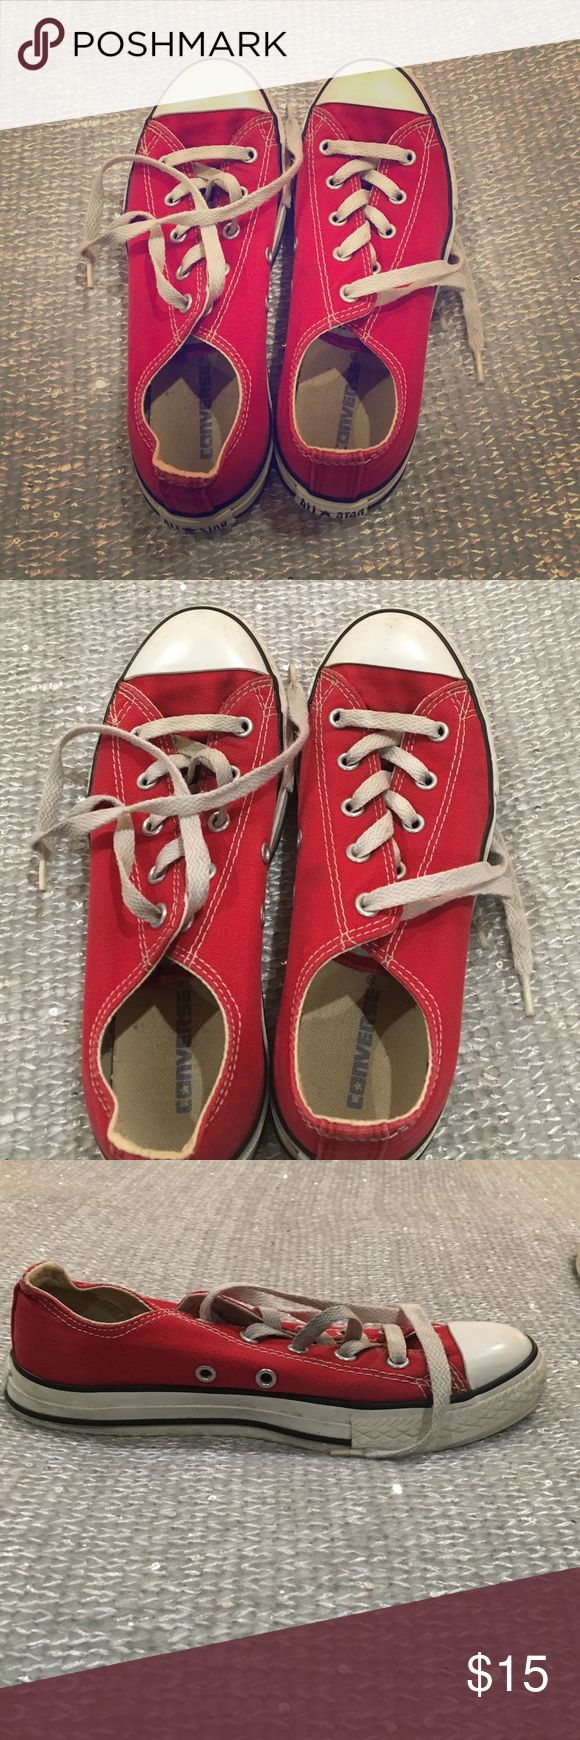 Red converse Previously poshed red converse sneakers. Shoes were too big for me. These are worn but still have a lot of life in them. These are a size 3 which is equivalent to a women's 5. Converse Shoes Sneakers